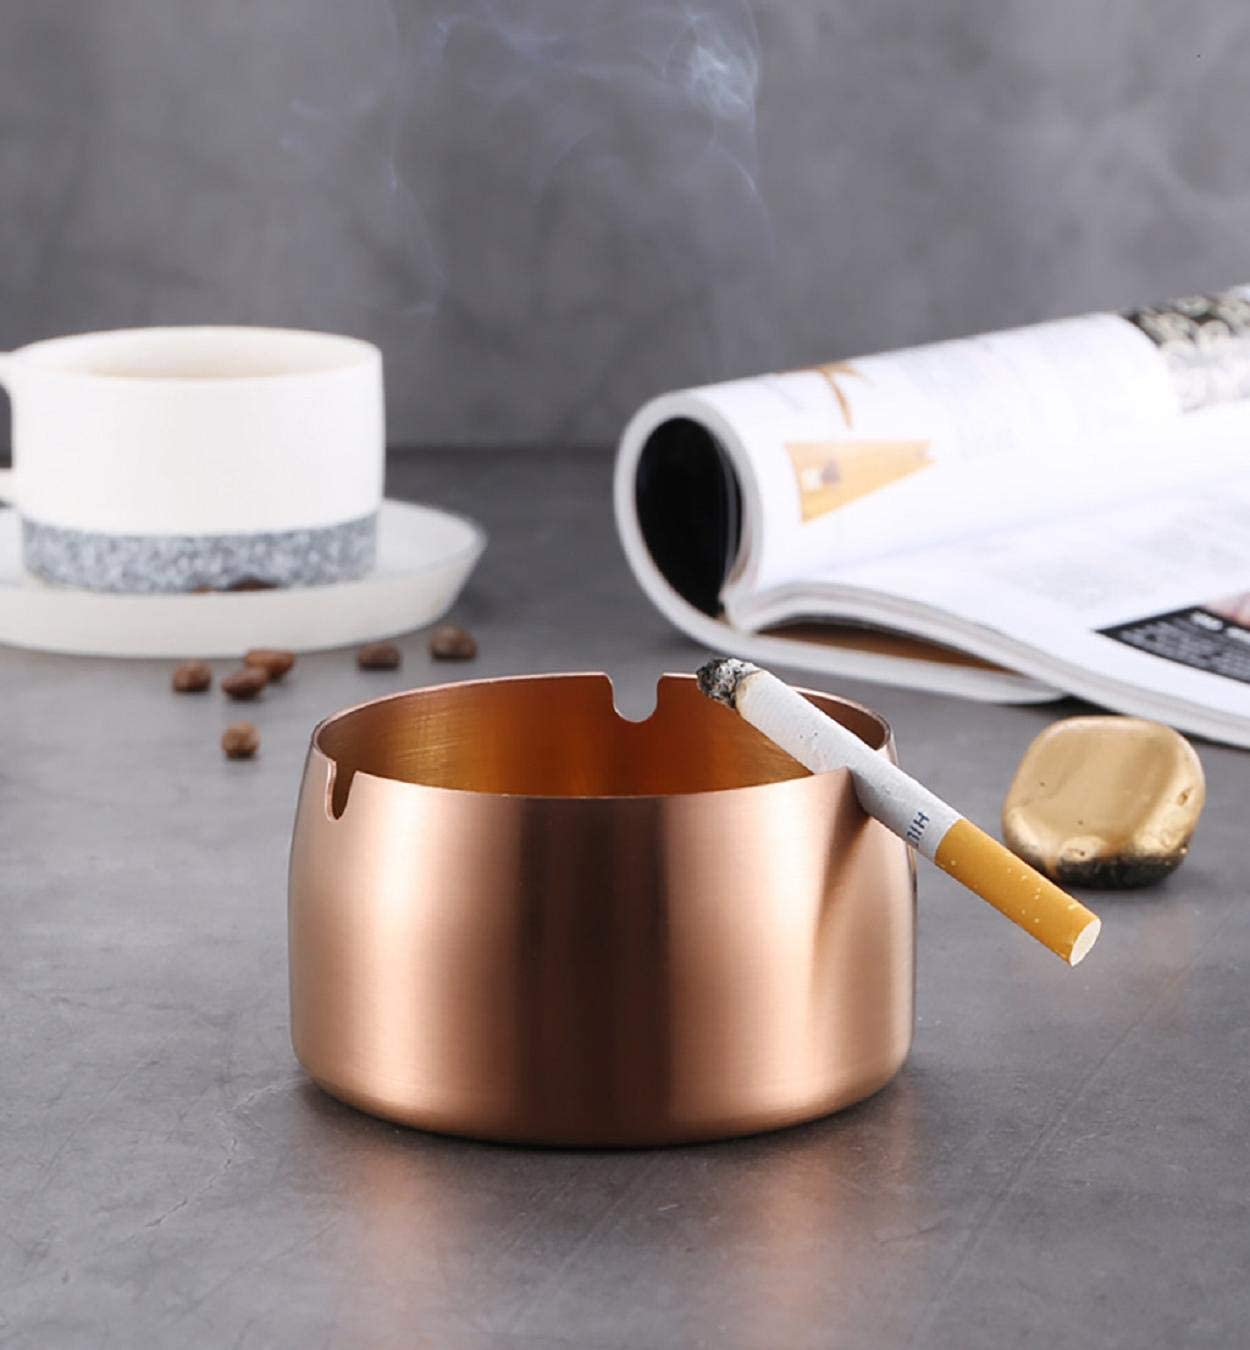 Dishwasher Safe Loneflash Ashtray Stainless Steel High Temperature Resistant Drop Resistant Round Design Ashtray Great for Outdoors and Patios 7.9x7.9x4.9cm Easy to Clean